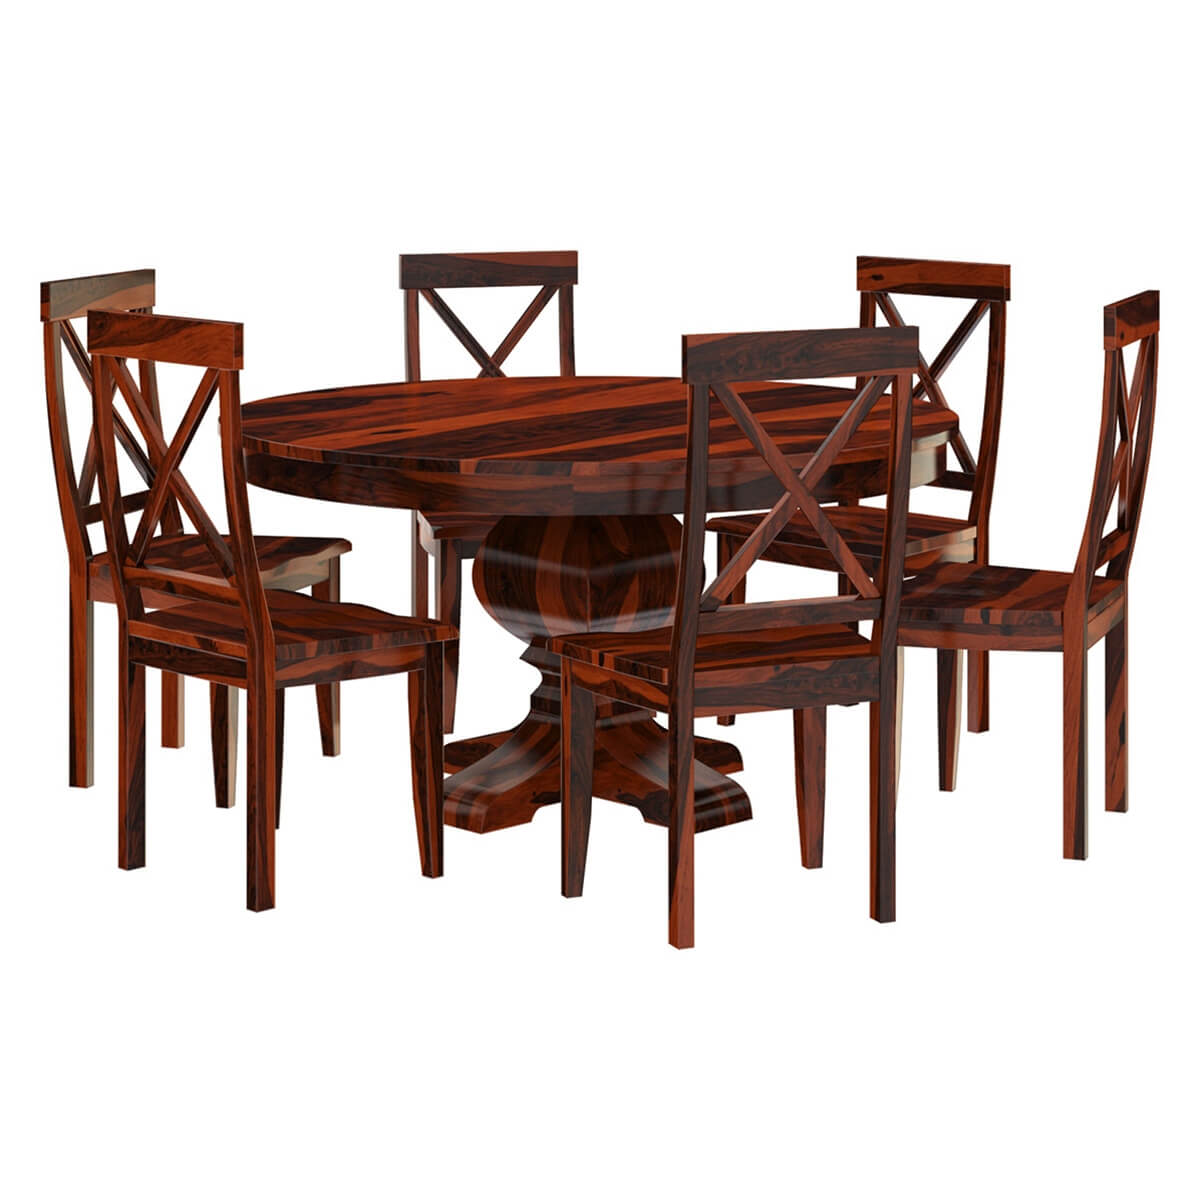 Missouri solid wood round pedestal dining table and chairs for Pedestal dining table and chairs